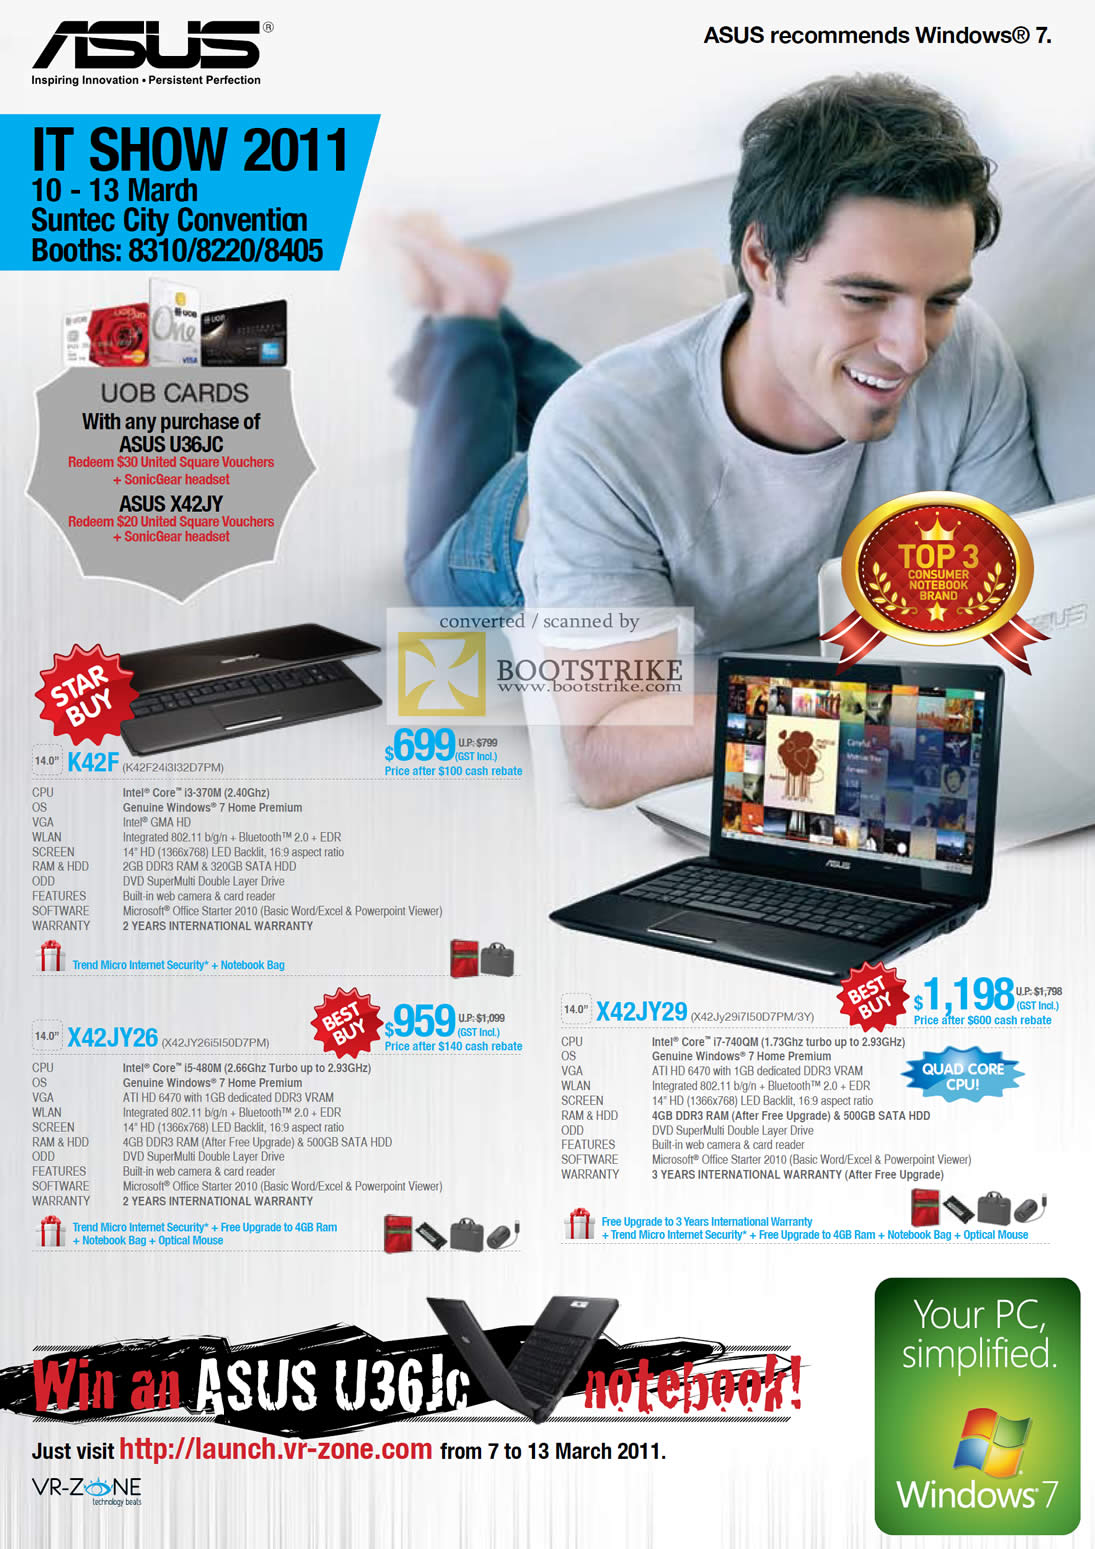 IT Show 2011 price list image brochure of ASUS Notebooks K42F X42JY26 X42JY29